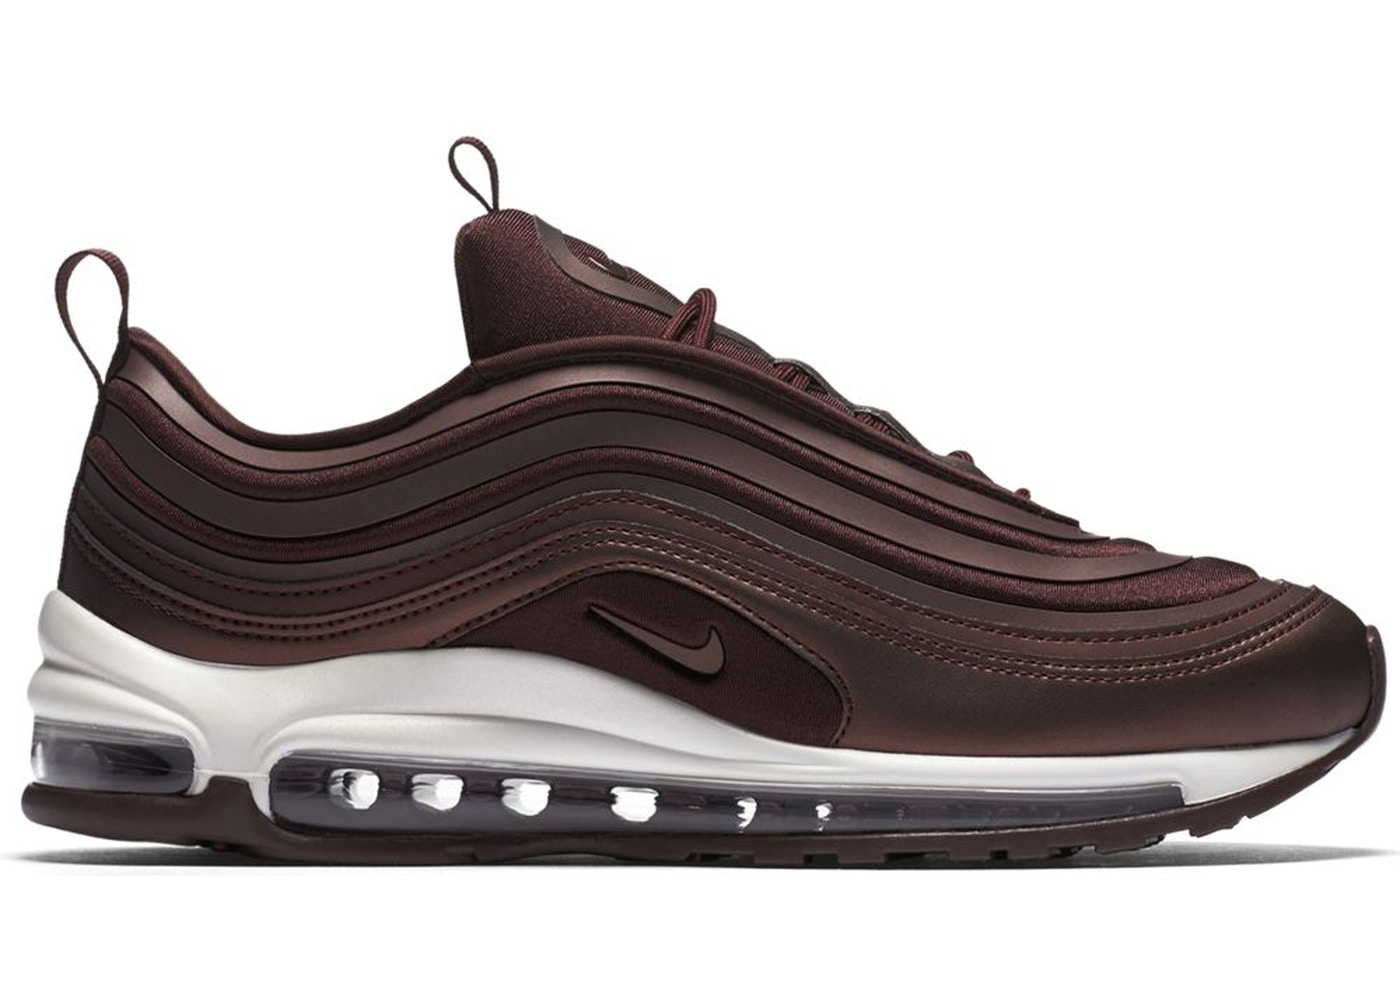 timeless design 8ce48 861f3 Air Max 97 Ultra 17 Metallic Mahogany (W)